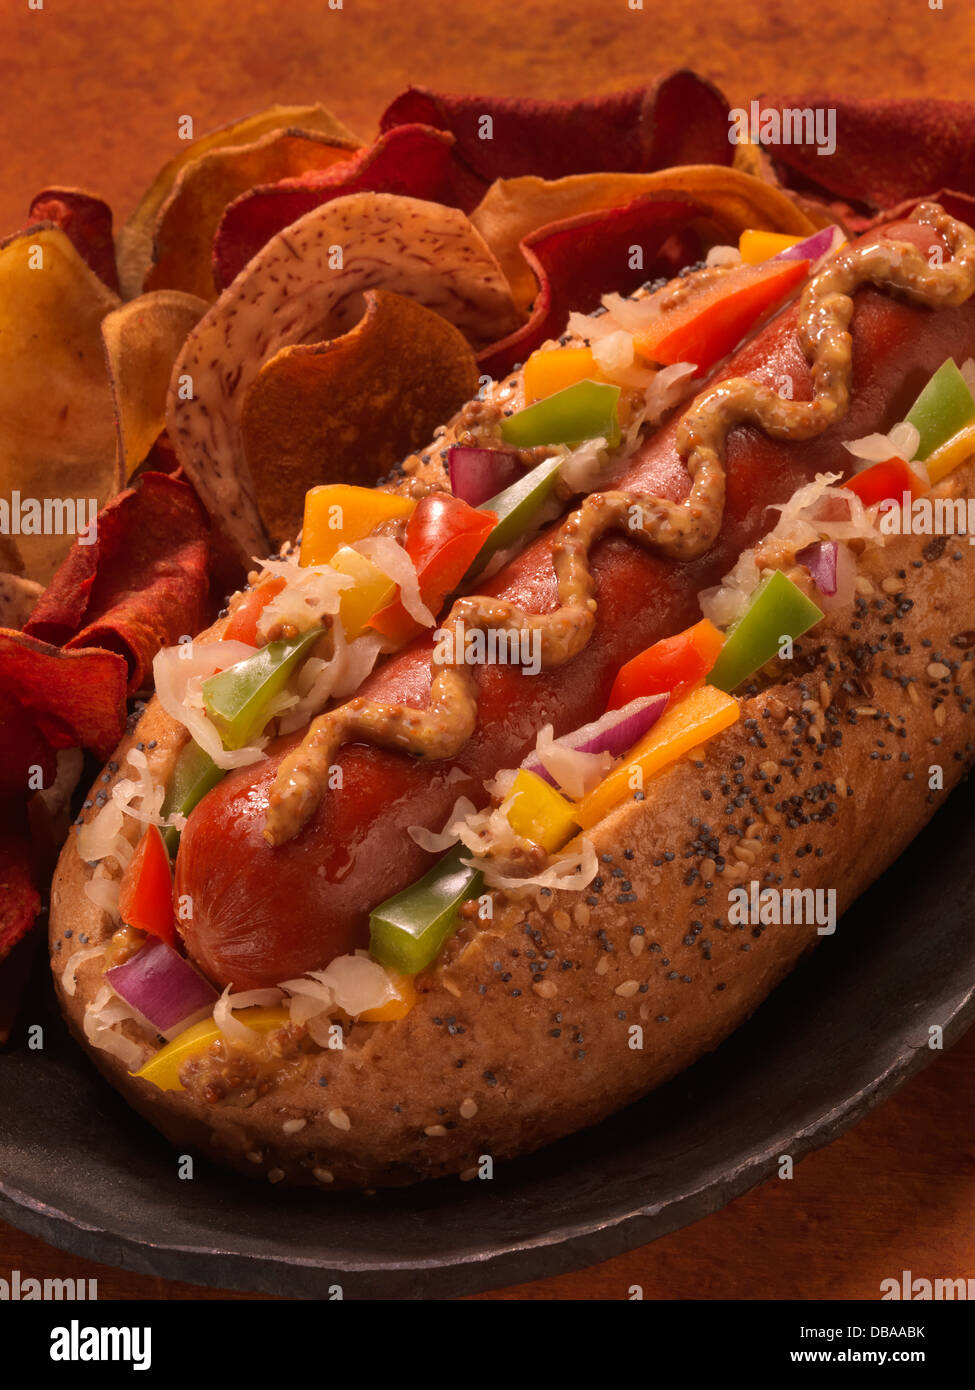 Chicago Hot Dog Stock Photos Amp Chicago Hot Dog Stock